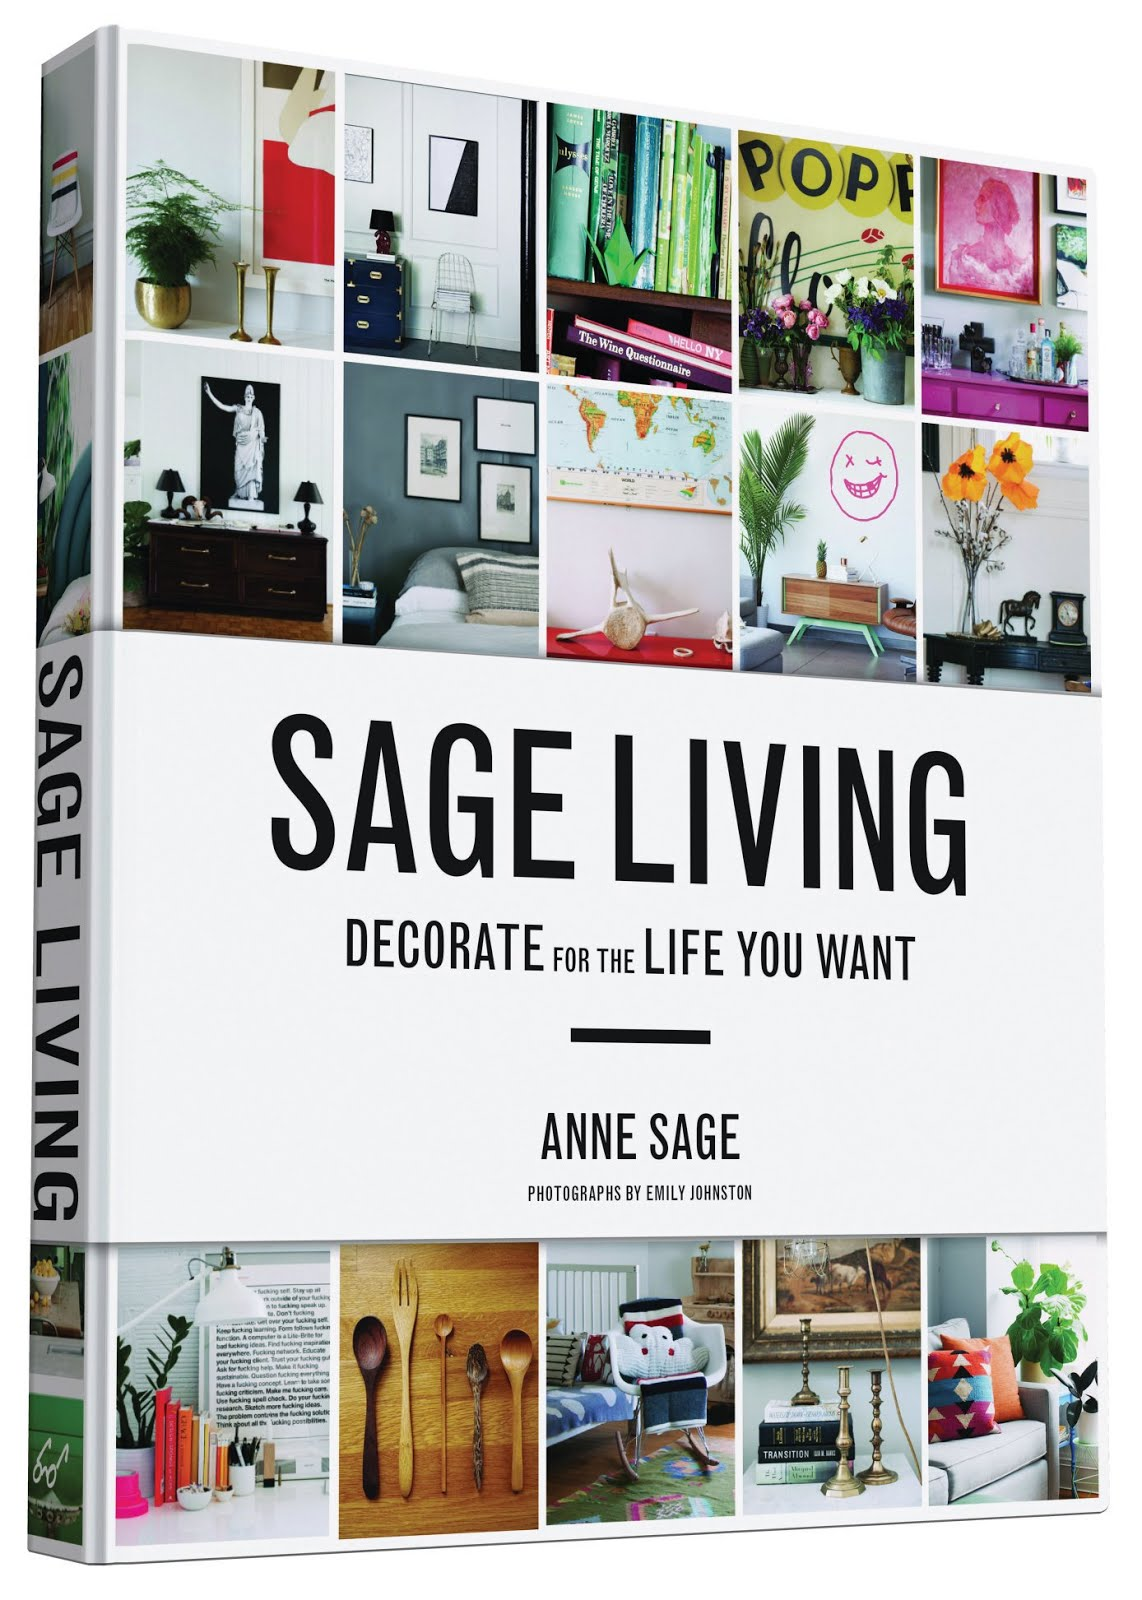 MY HOME FEATURED IN SAGE LIVING